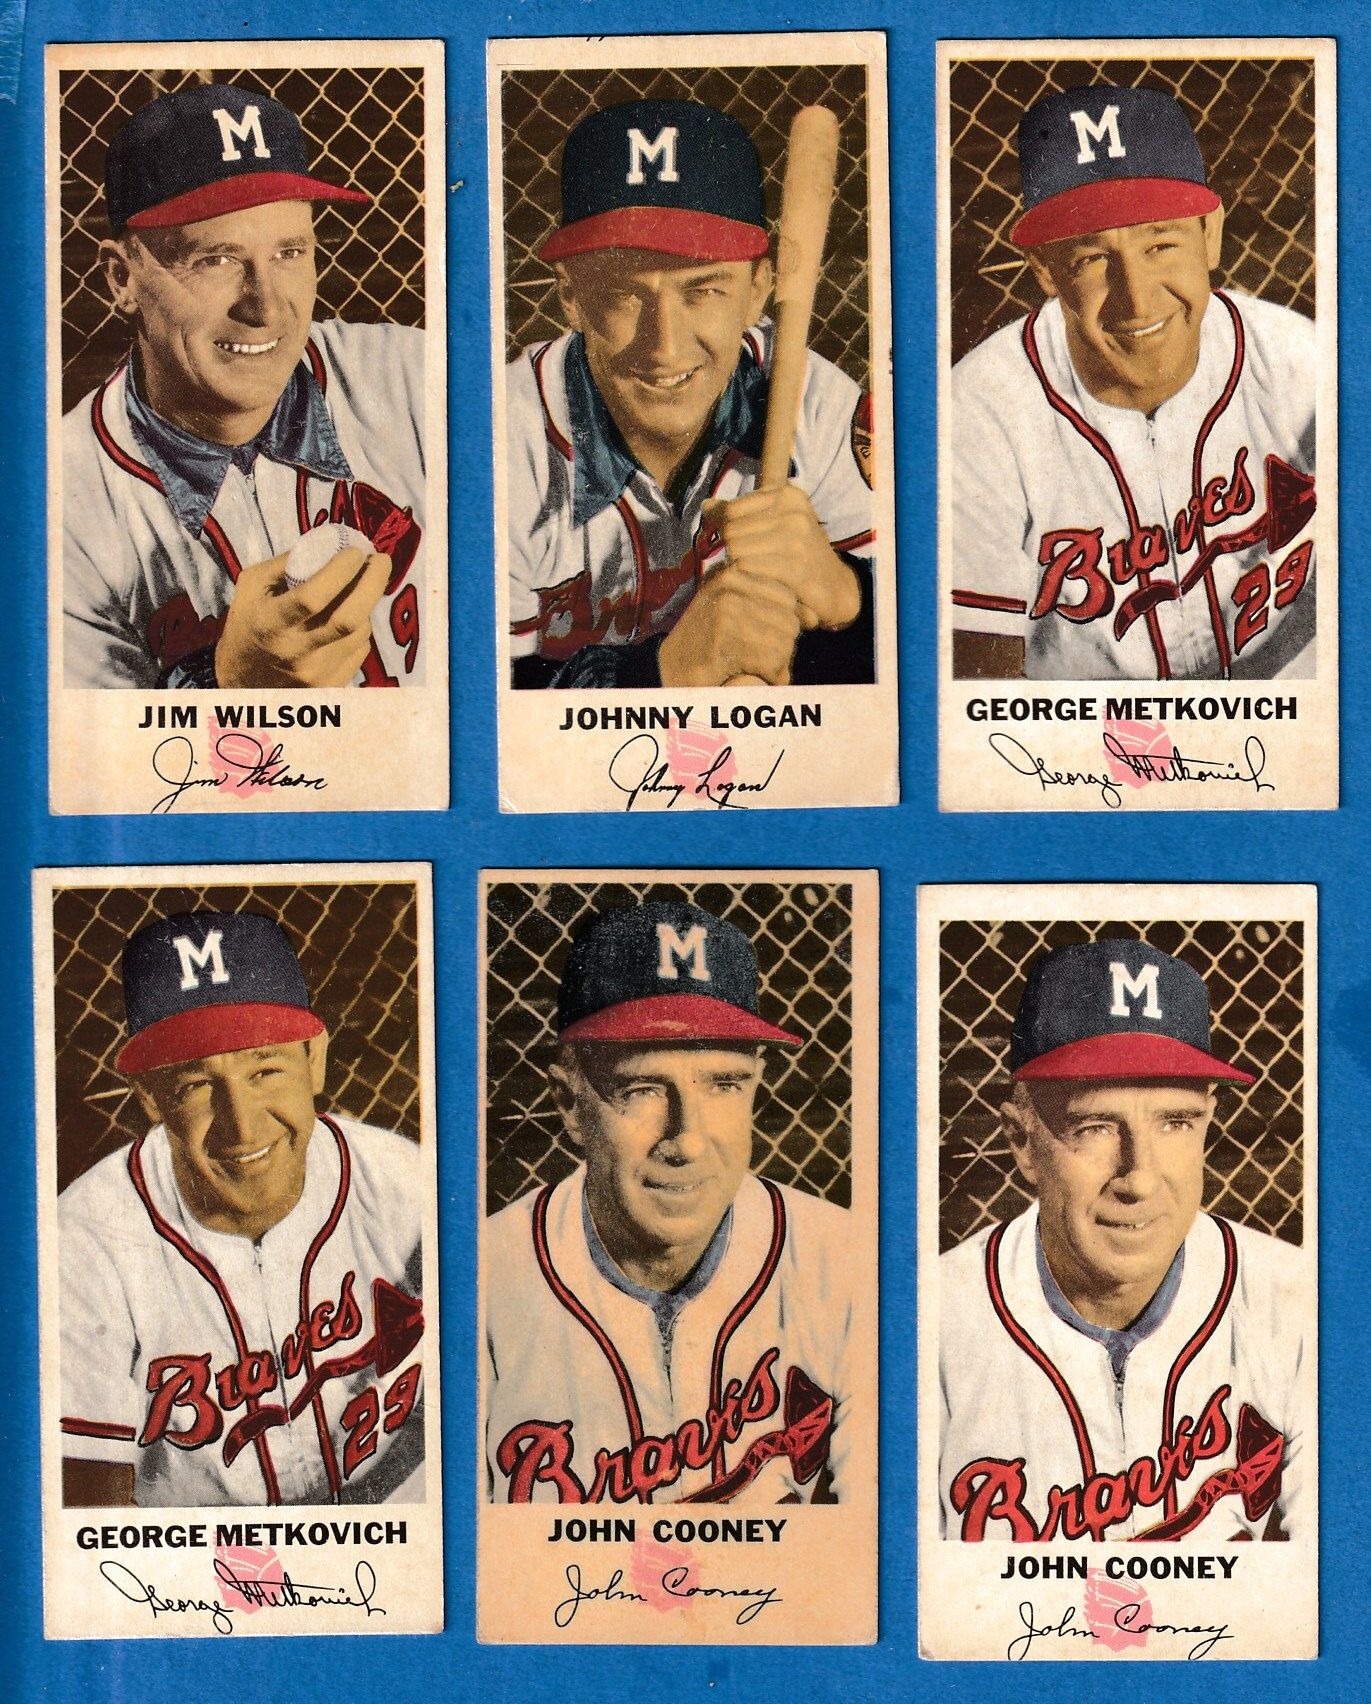 1954 Johnston Cookies #19 Jim Wilson (Braves) Baseball cards value